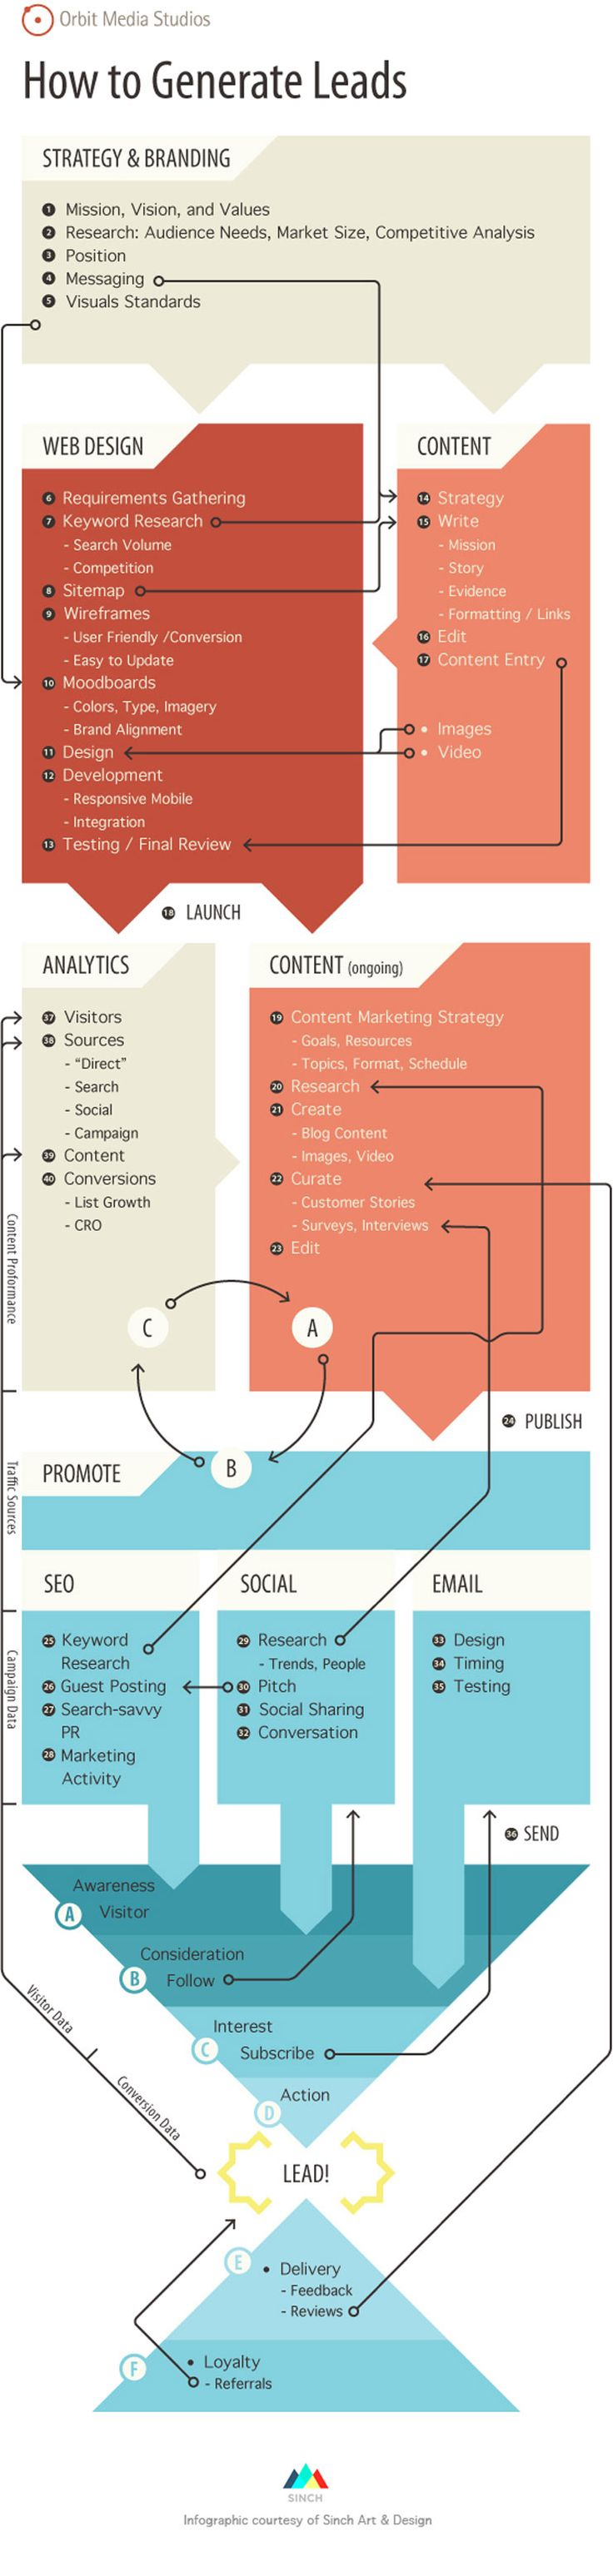 How to Generate #Leads an #Infographic